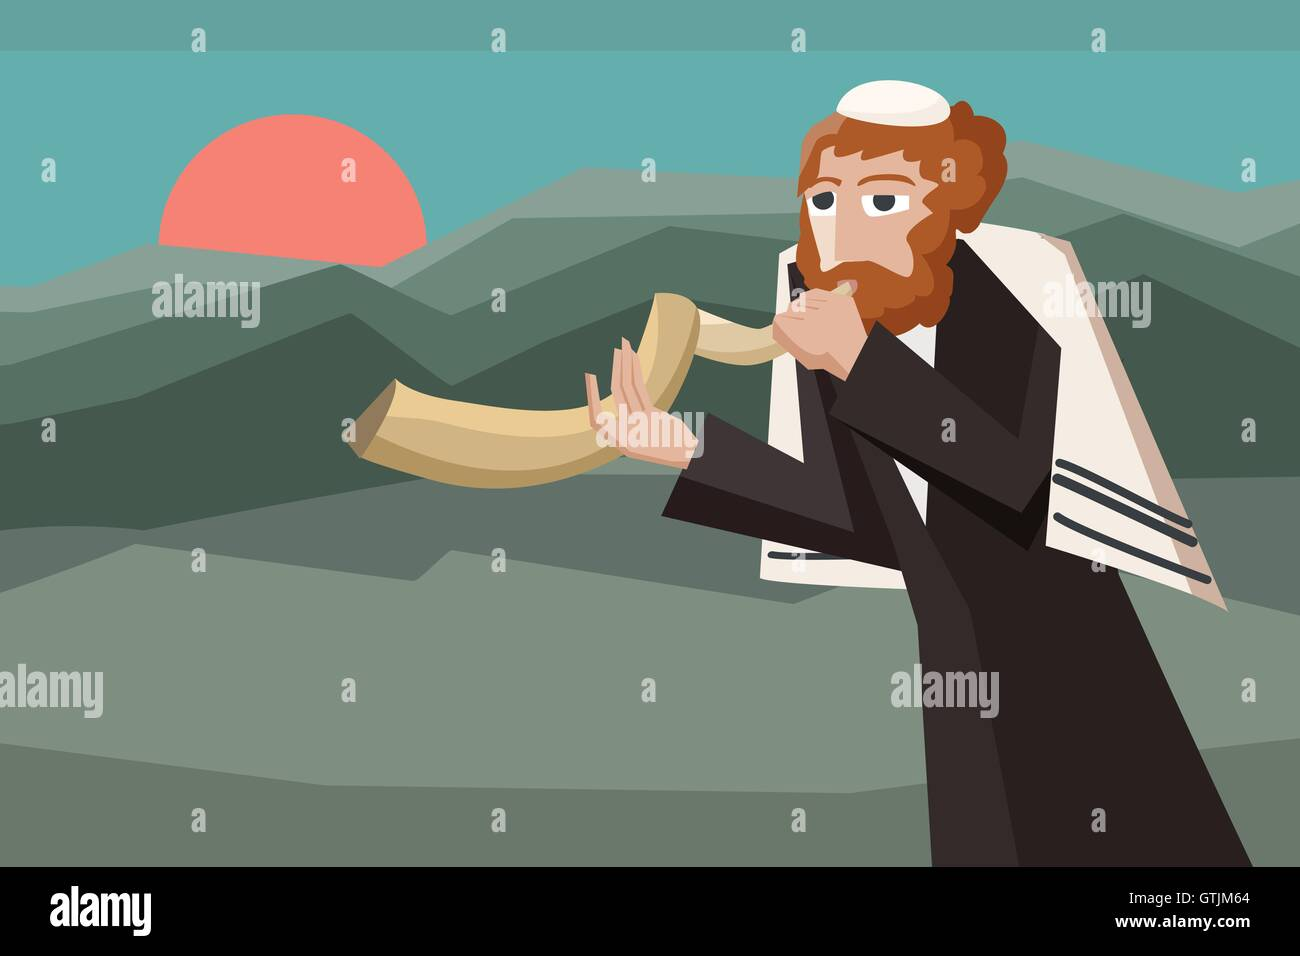 jew blowing the shofar - vector cartoon illustration for jewish holiday - Stock Vector